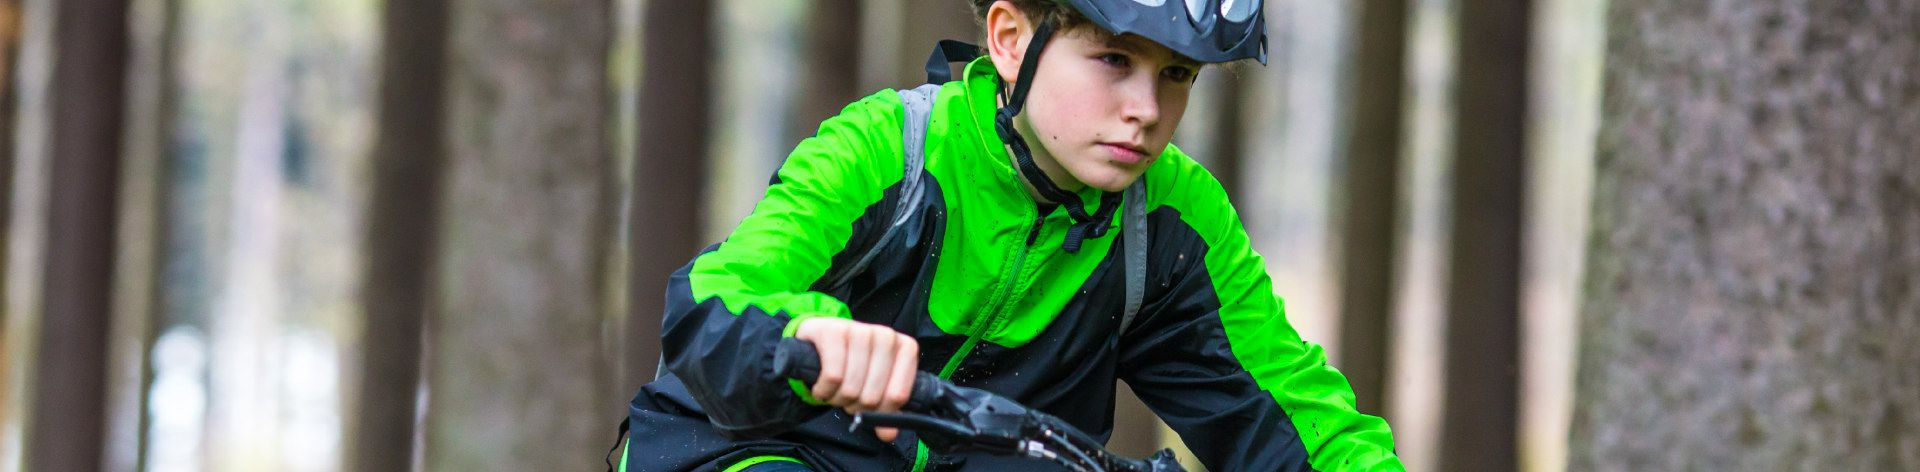 online cycling jackets kids